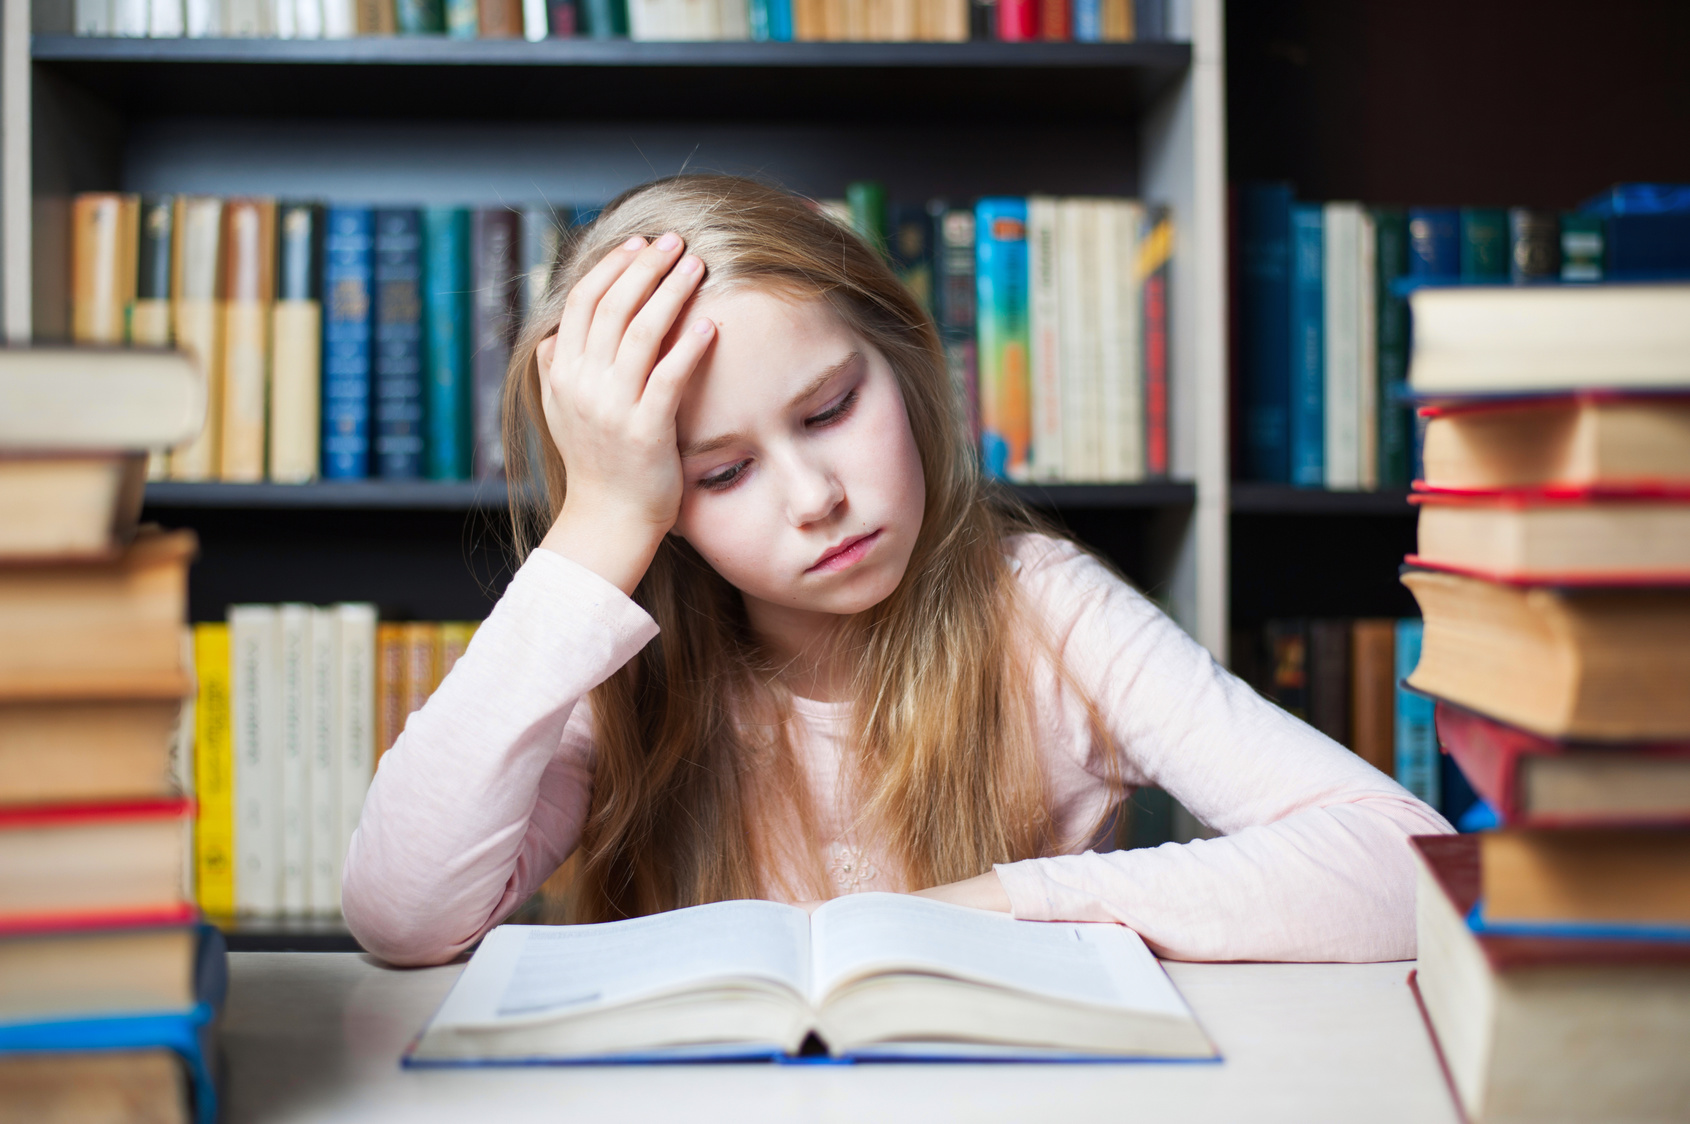 Beat the board exam stress using these easy ways